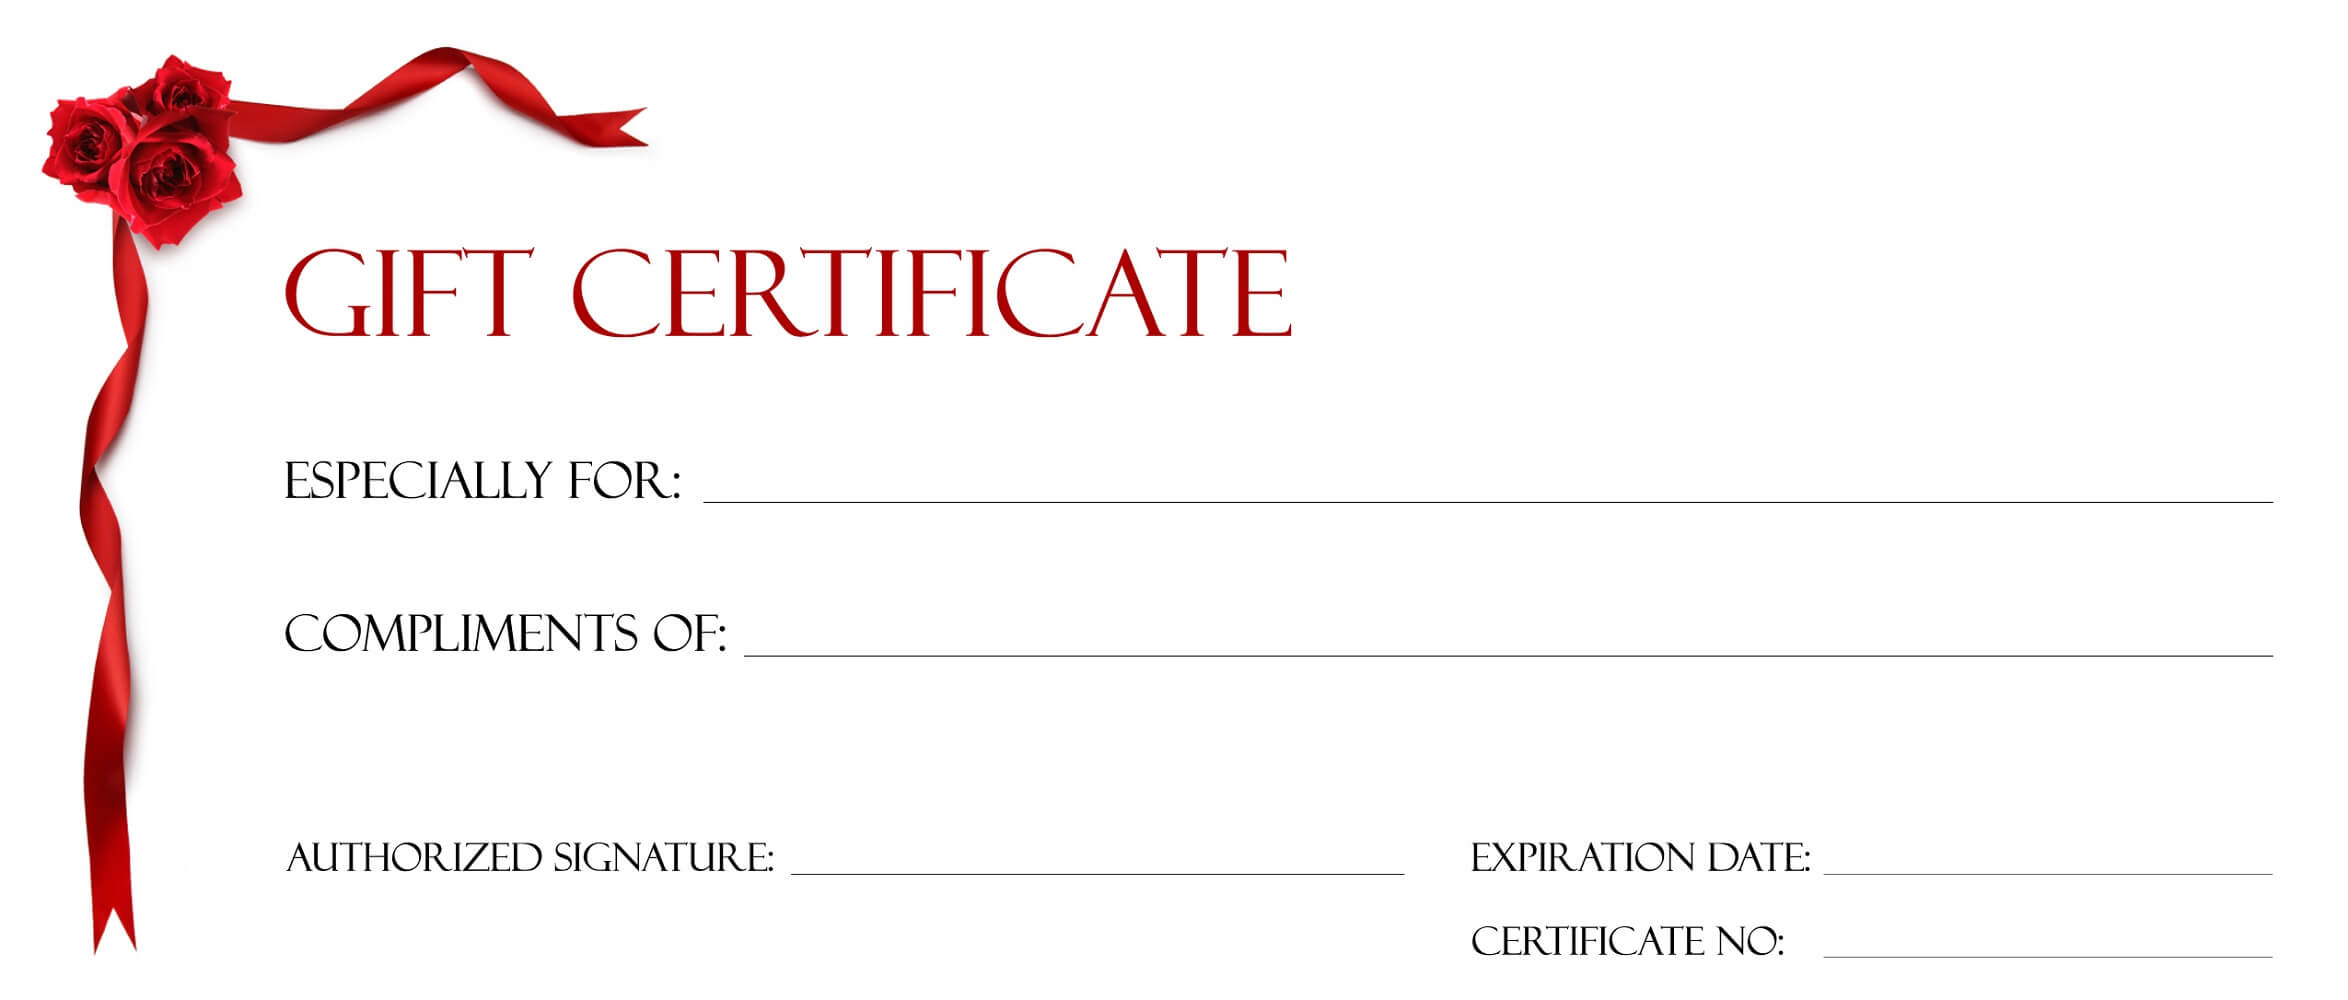 Gift Certificate Templates To Print | Activity Shelter Regarding Pages Certificate Templates